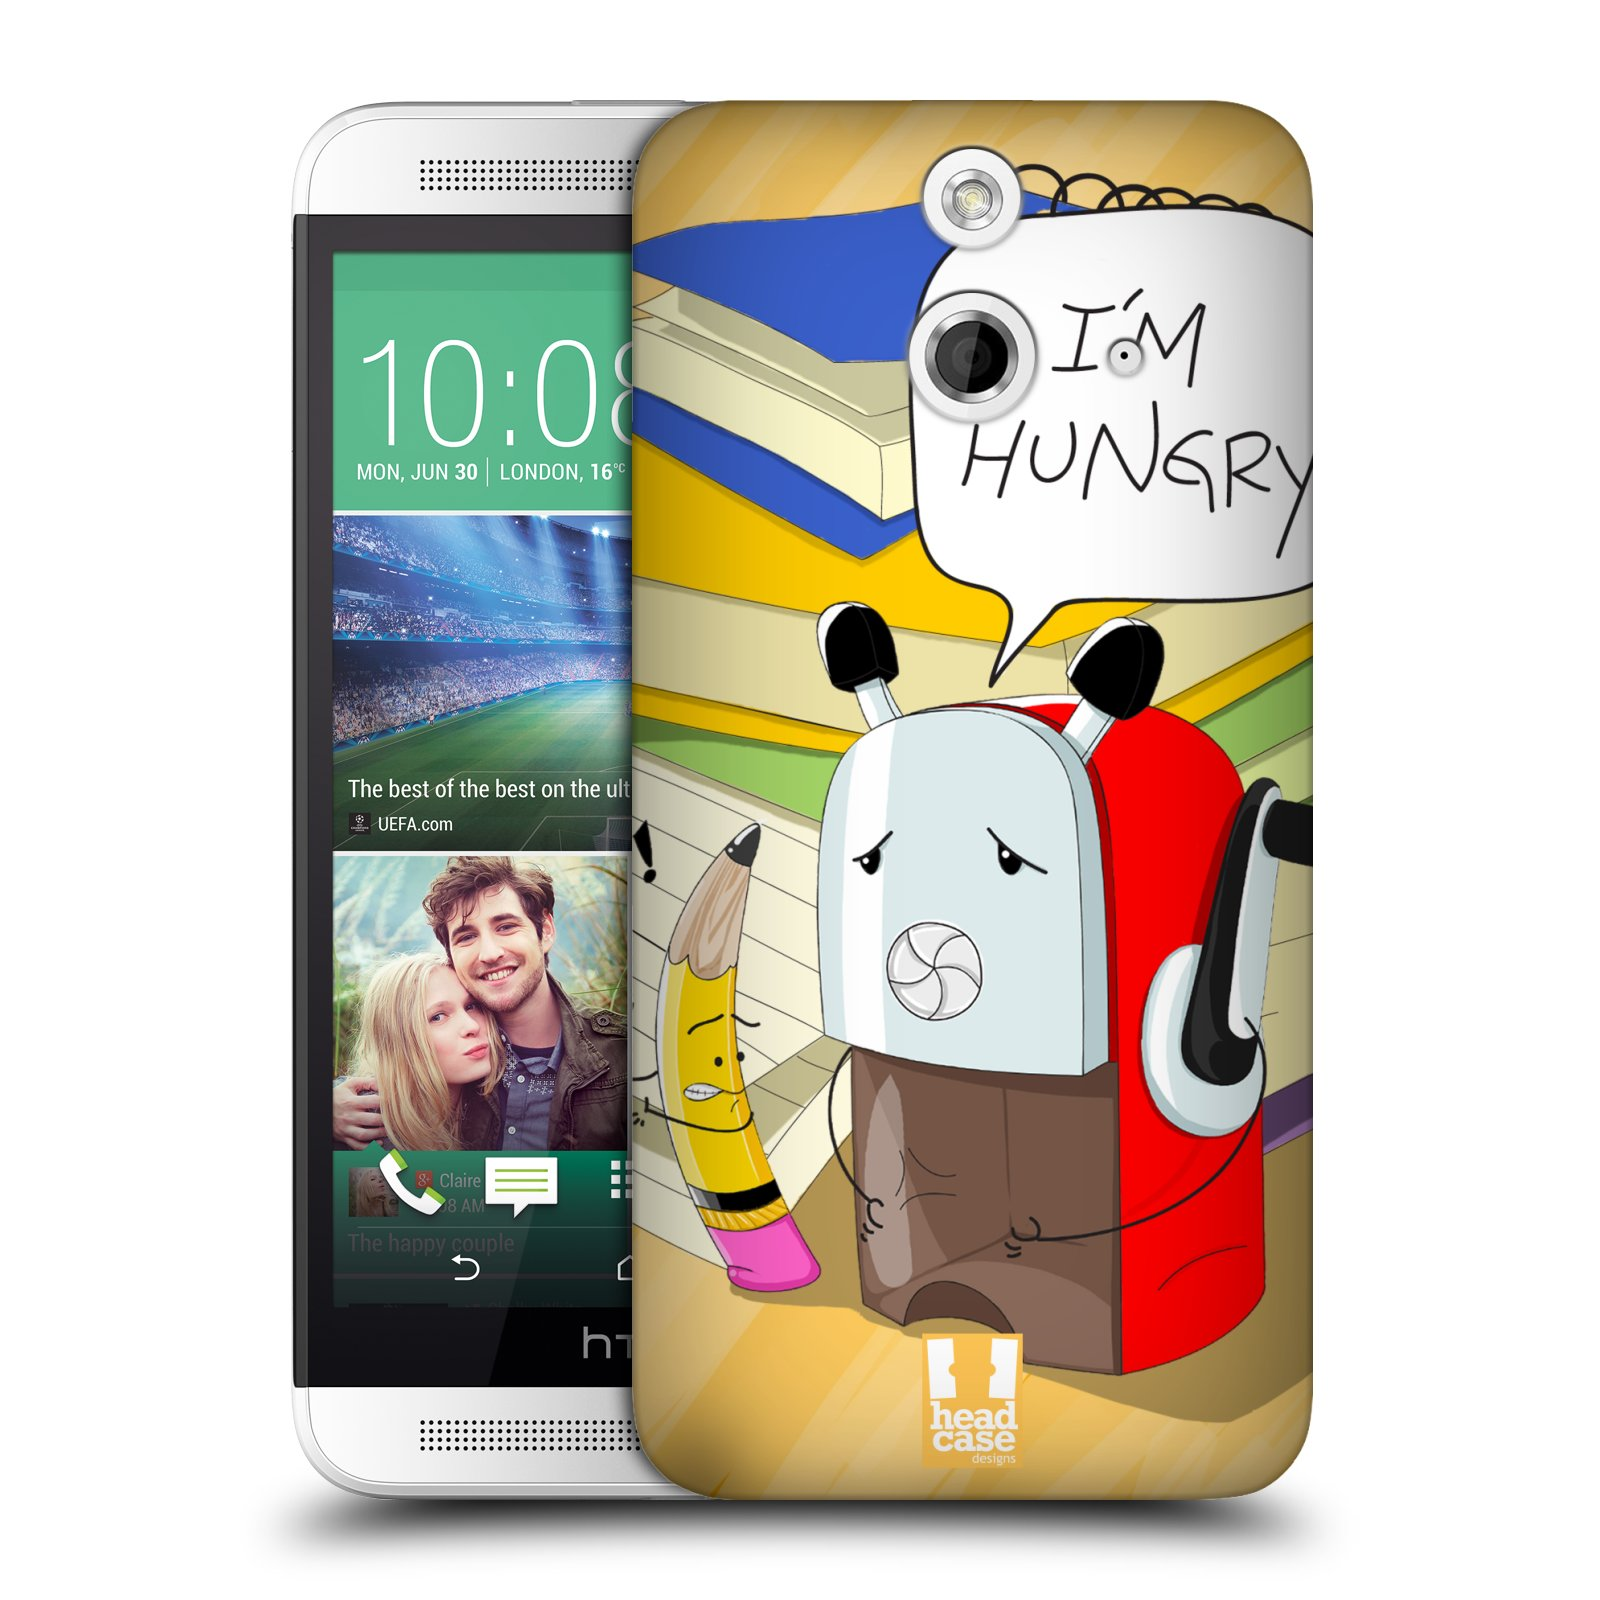 HEAD CASE DESIGNS PUNCHLINES HARD BACK CASE FOR HTC ONE E8 LTE